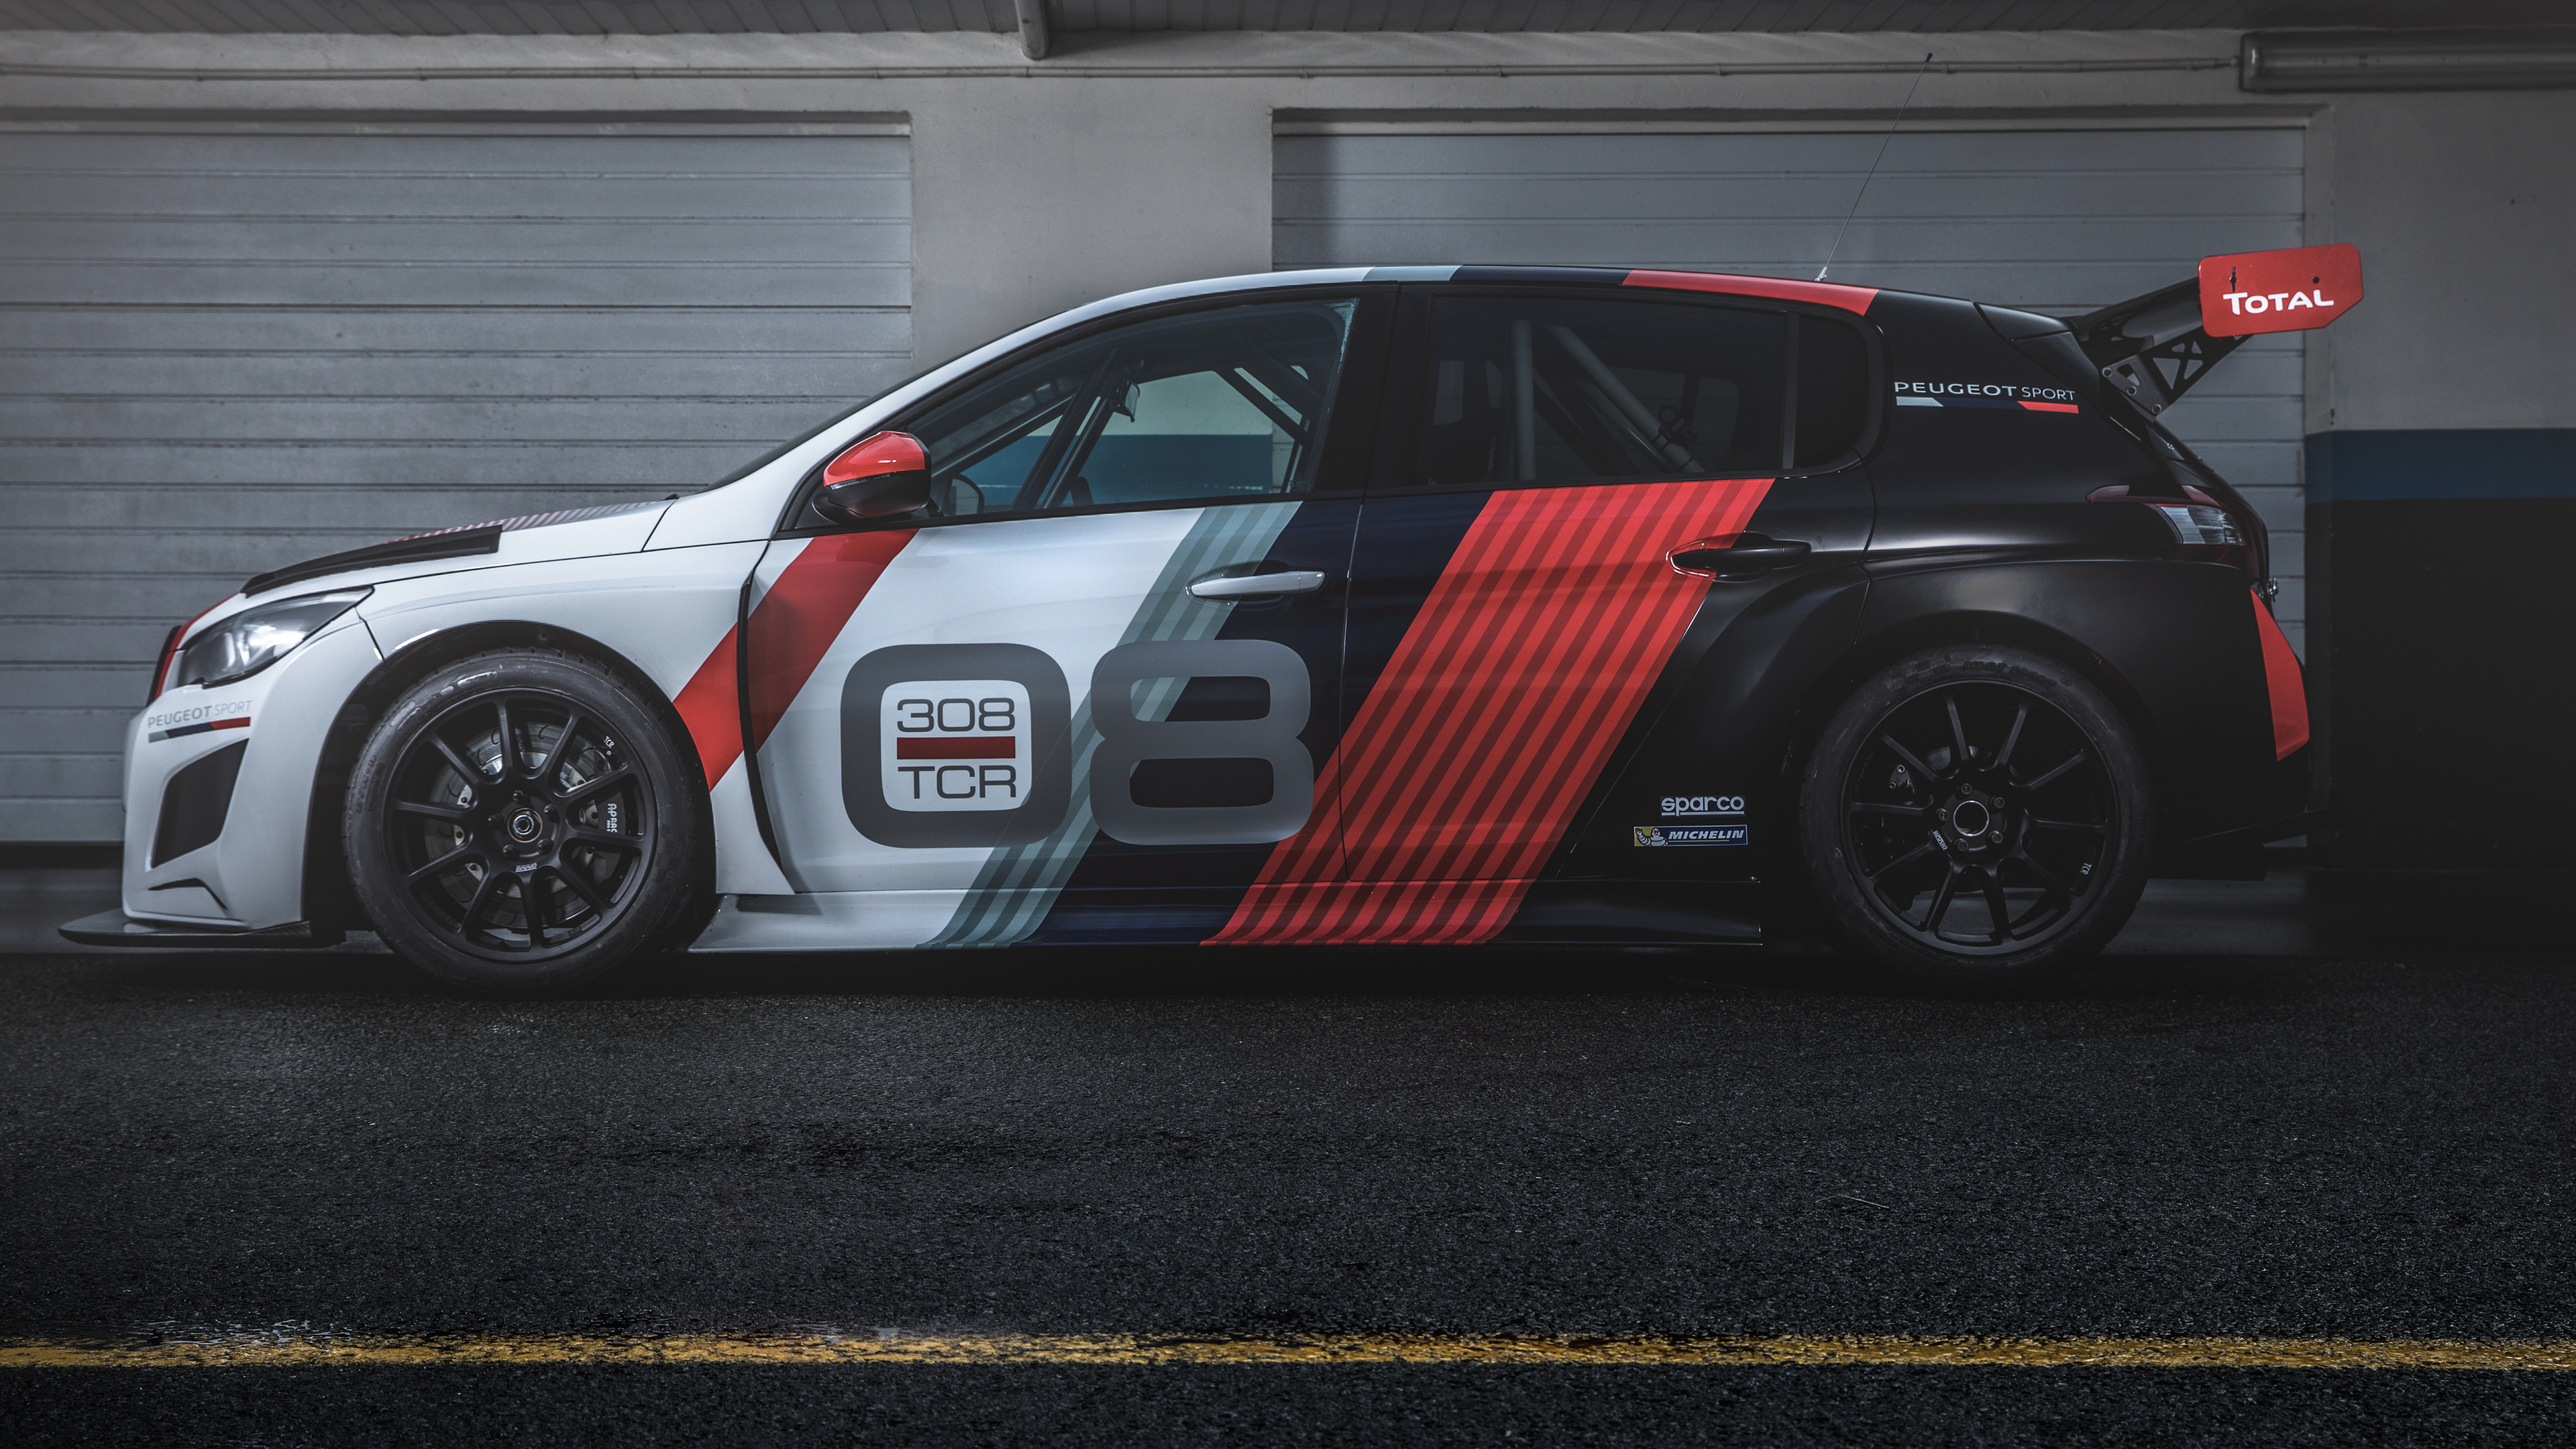 peugeot 308 tcr 2018 side view 1539108921 - Peugeot 308 TCR 2018 Side View - peugeot wallpapers, peugeot 308 tcr wallpapers, hd-wallpapers, cars wallpapers, 4k-wallpapers, 2018 cars wallpapers